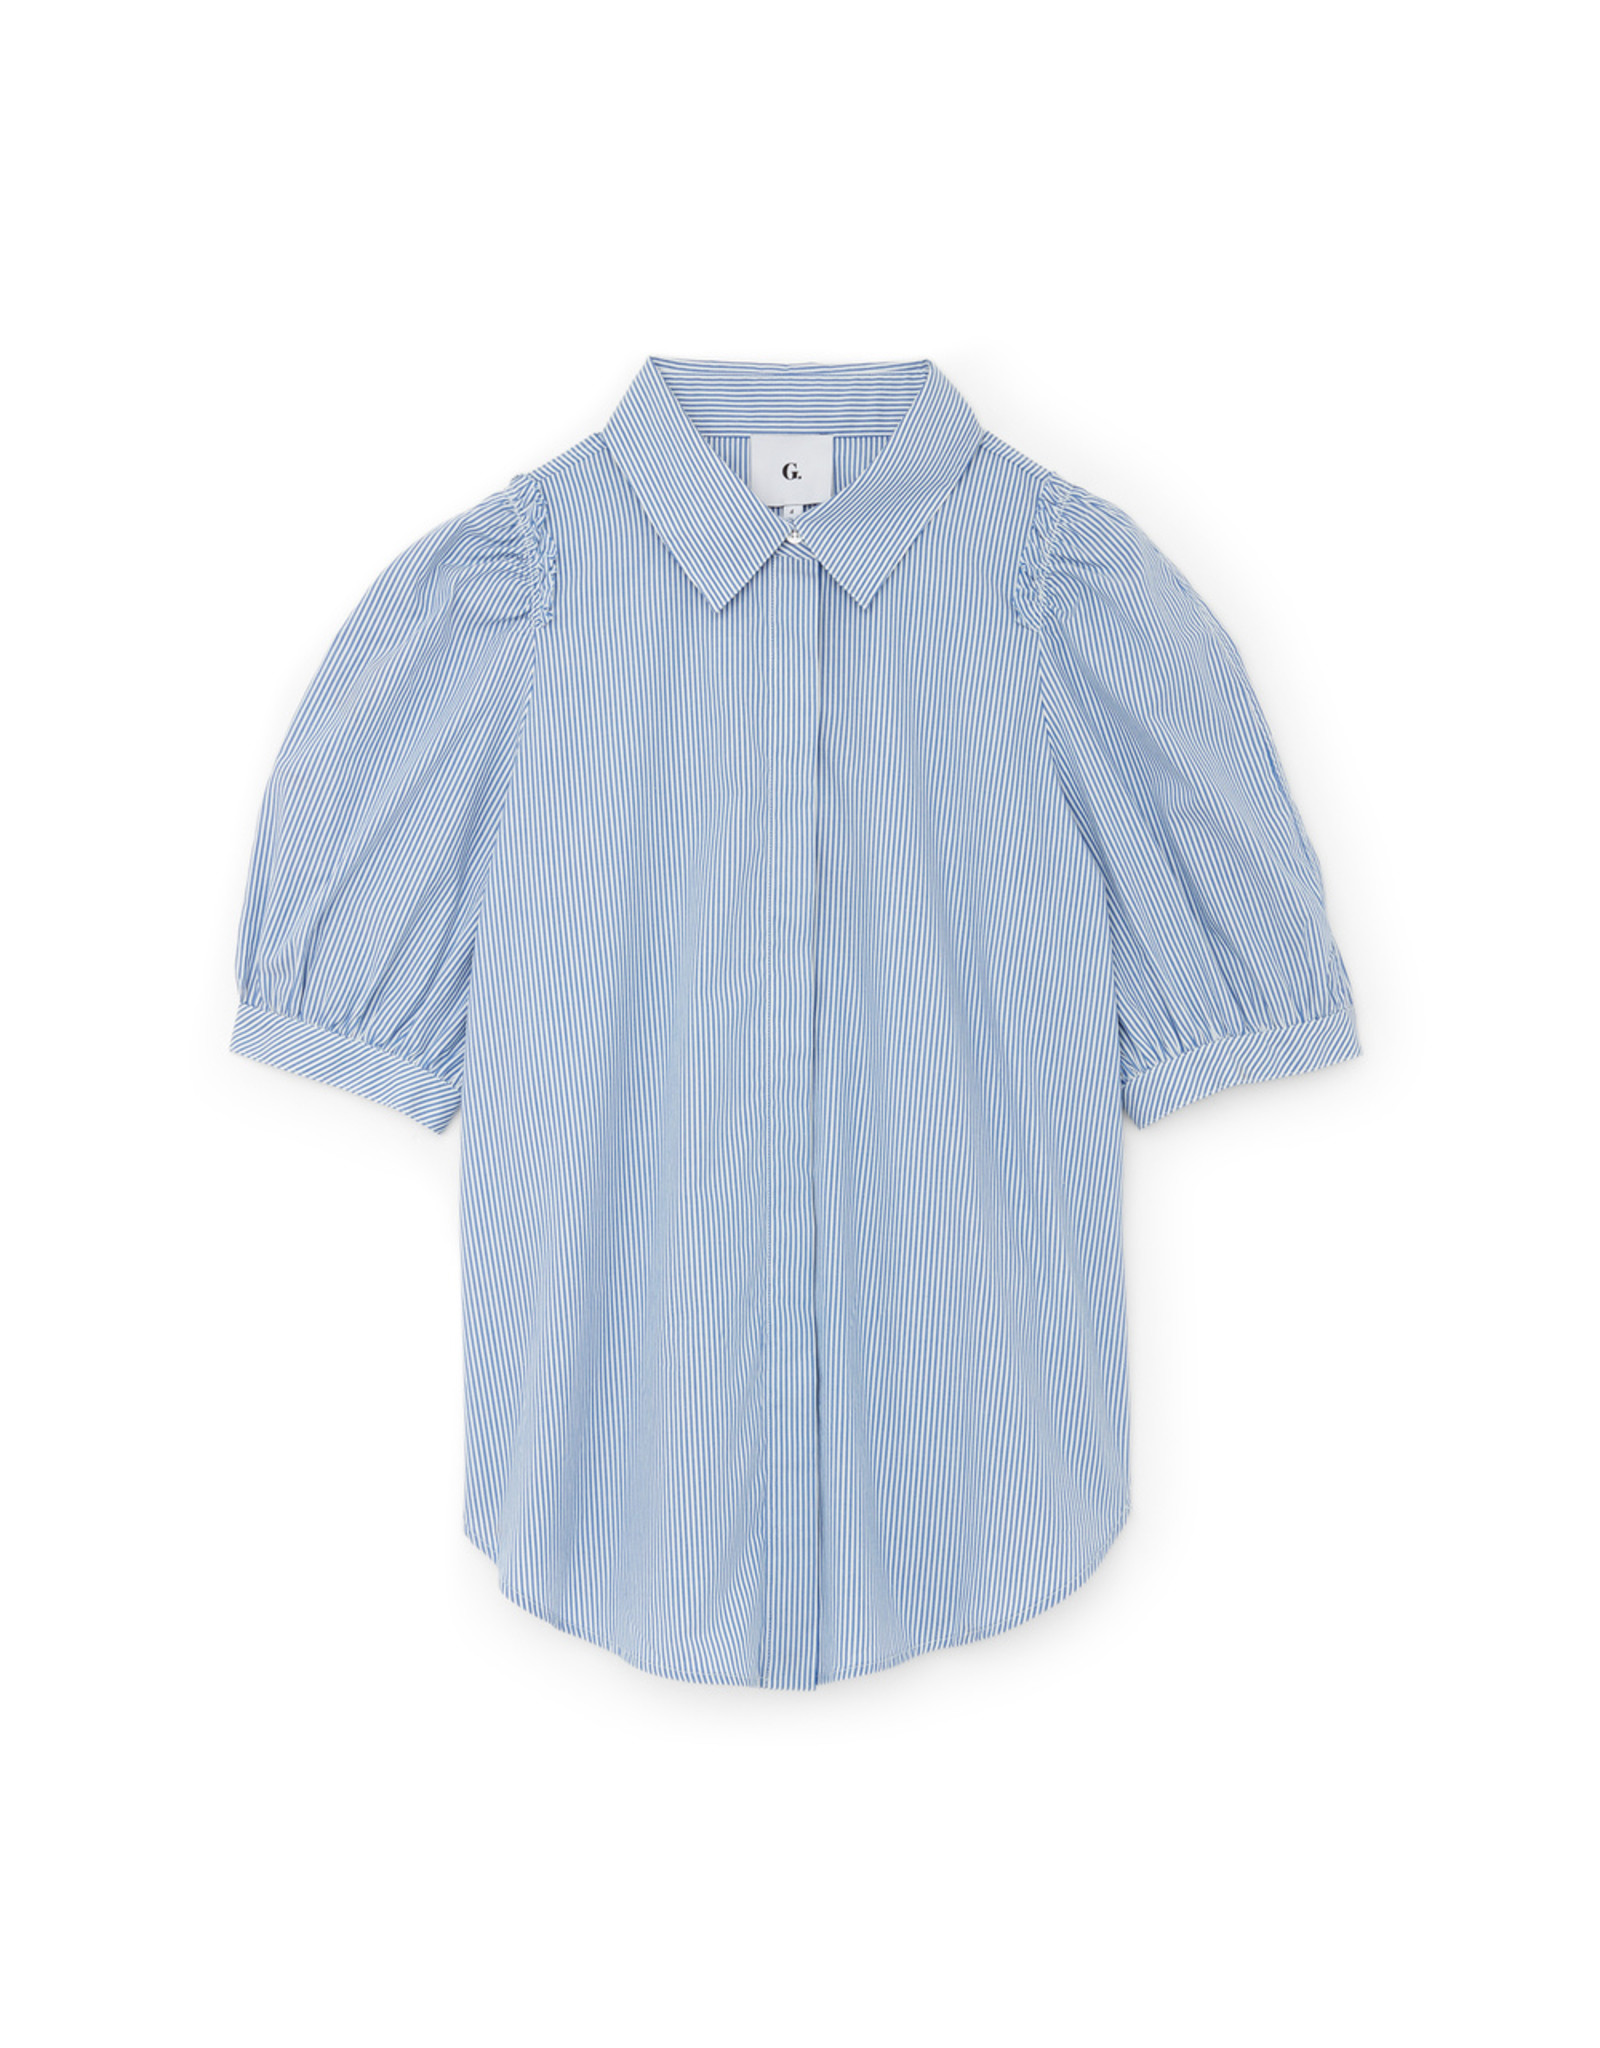 G. Label G. Label Nicole Puff-Sleeve Button-Down with Collar (Size: 4, Color: Blue/White Stripe)